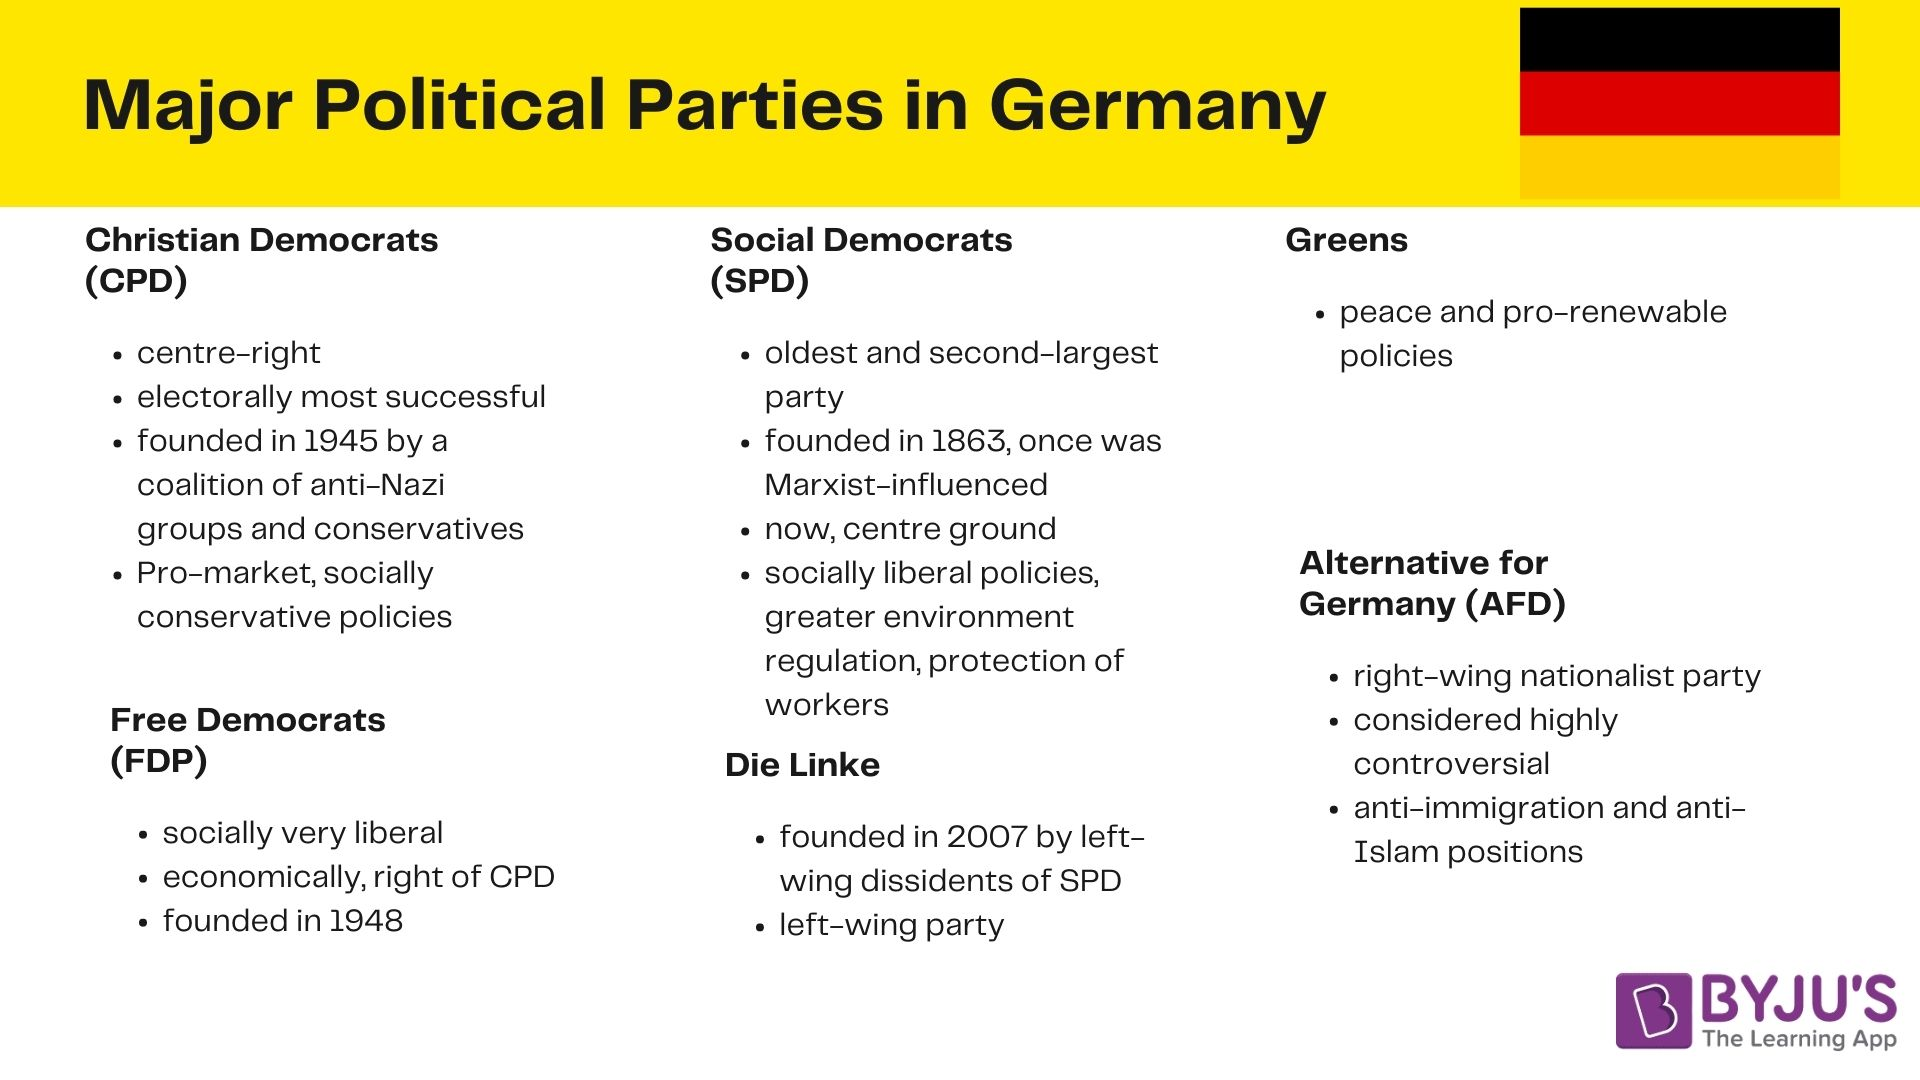 Major political parties in Germany